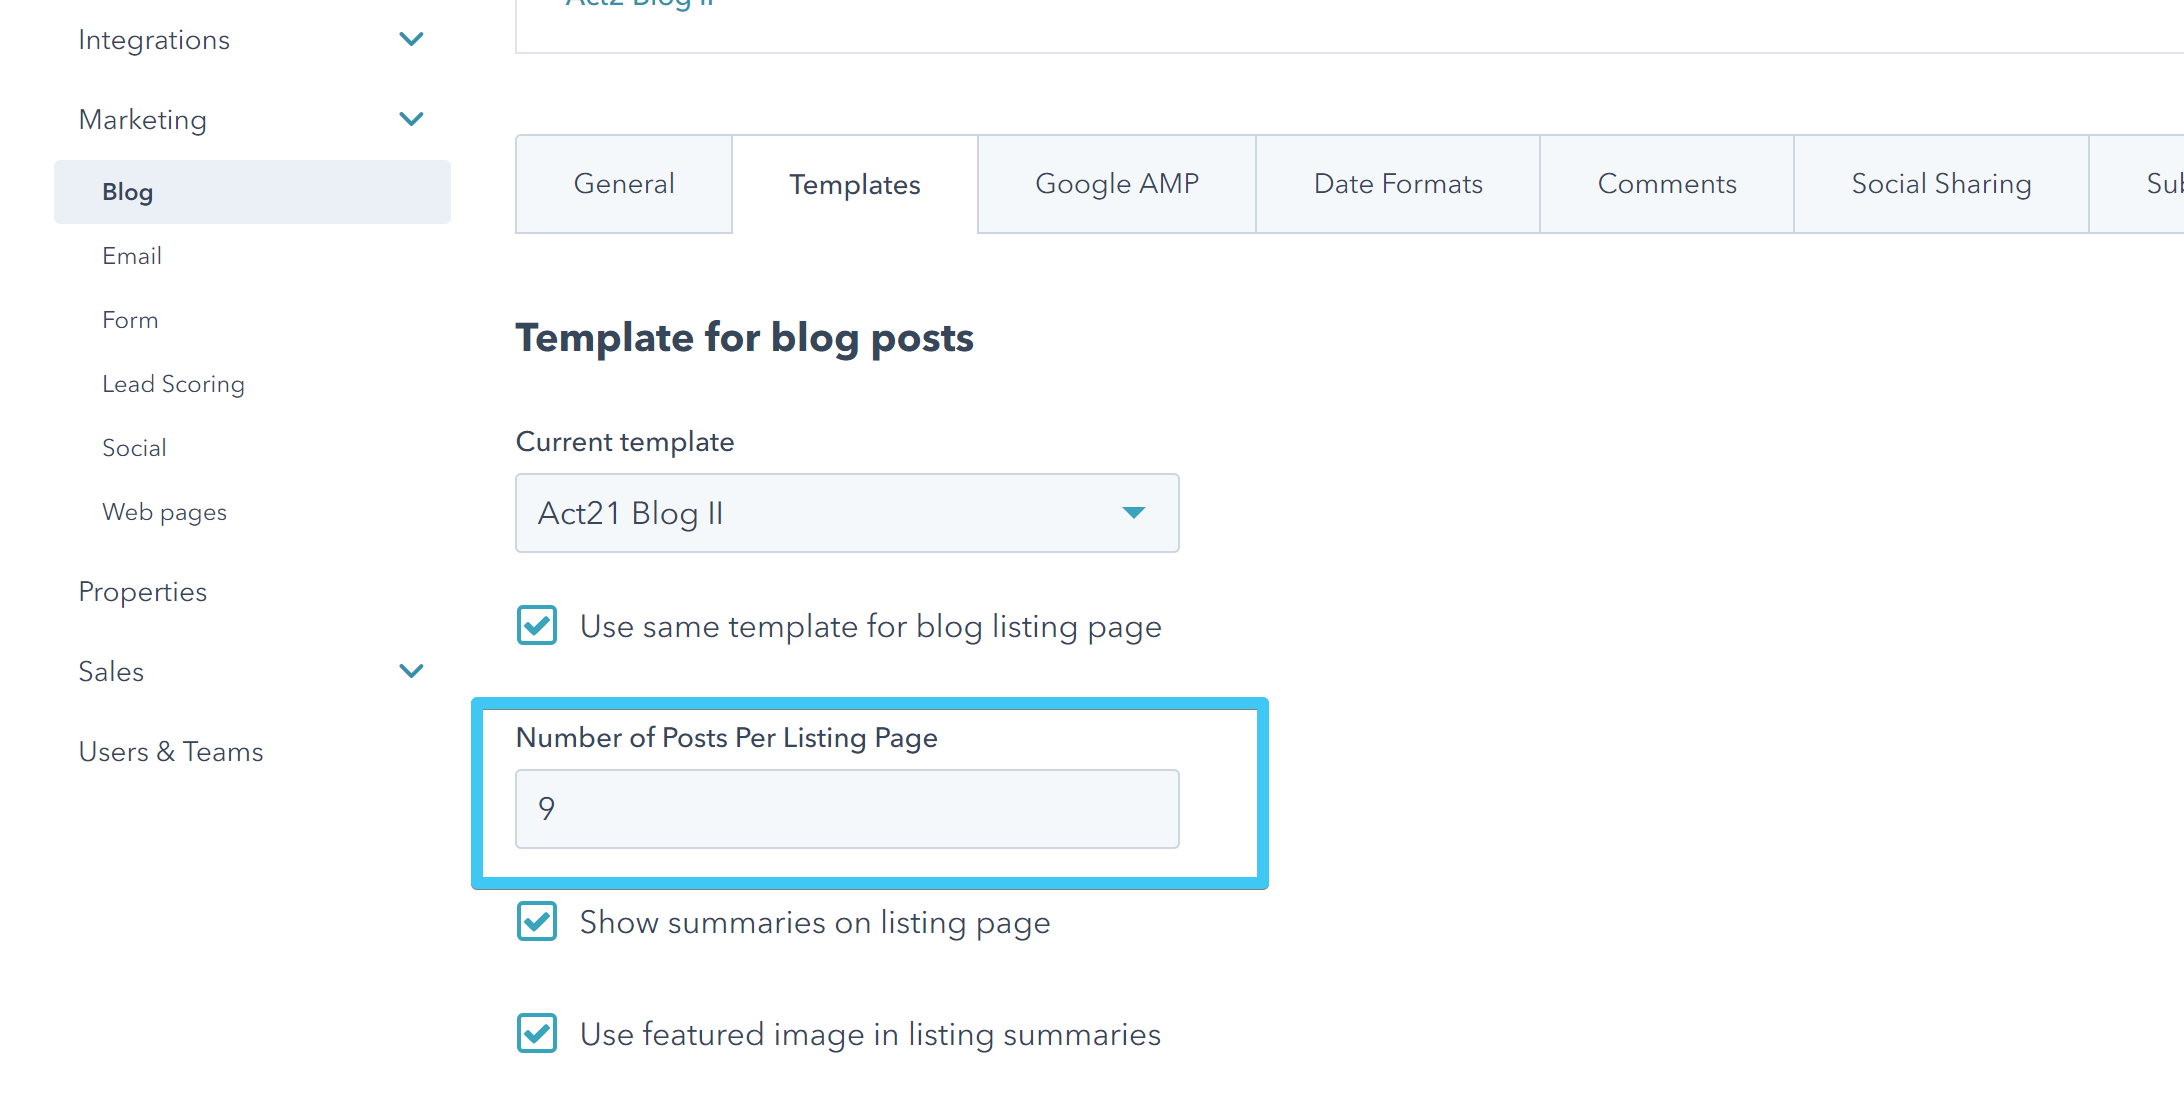 Act2 Content Settings Blog II Choose Number of Posts Per Listing